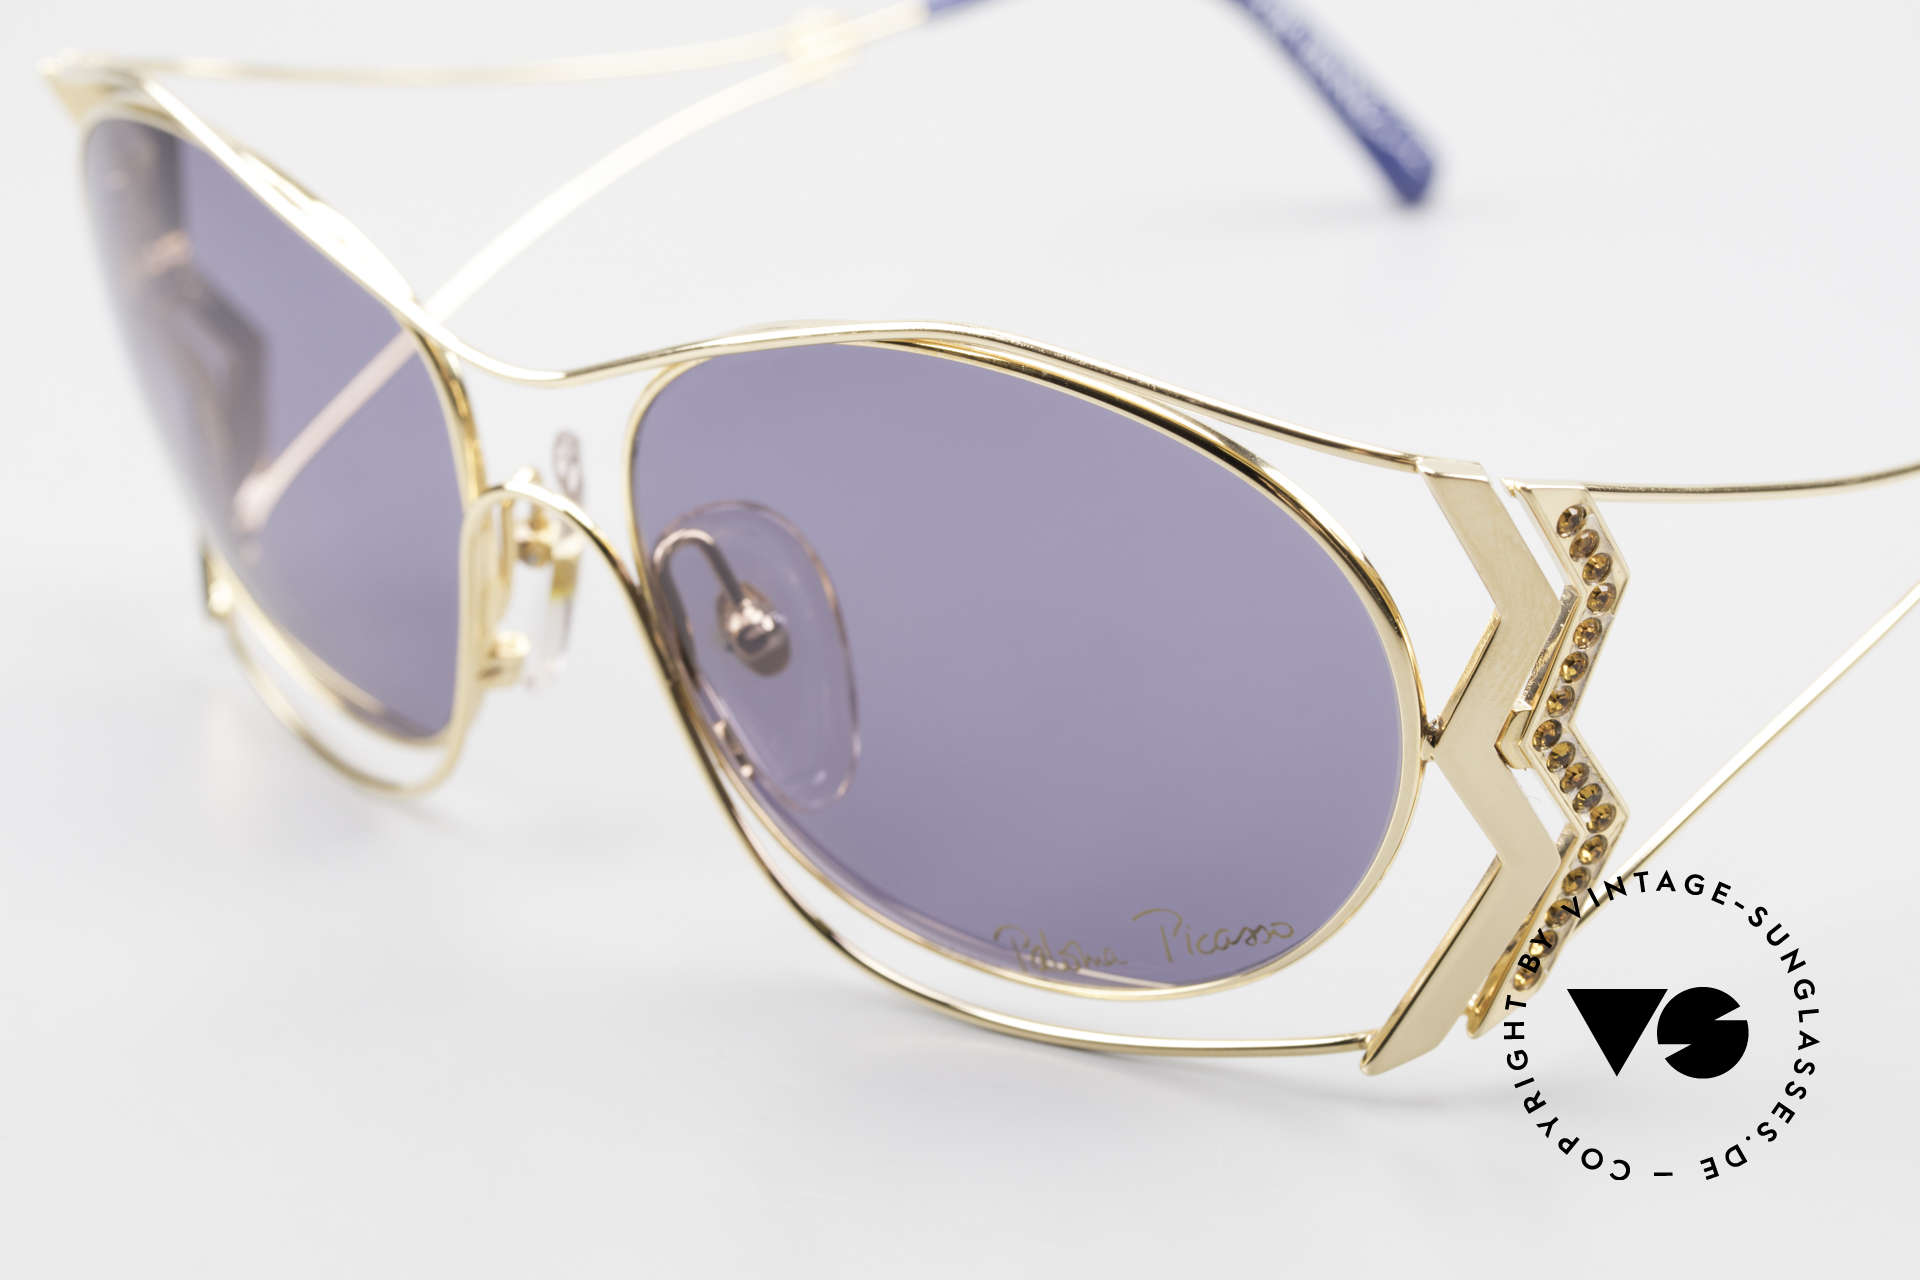 Paloma Picasso 3707 90's Sunglasses Gold-Plated, unworn model, NOS (with original case by P. Picasso), Made for Women